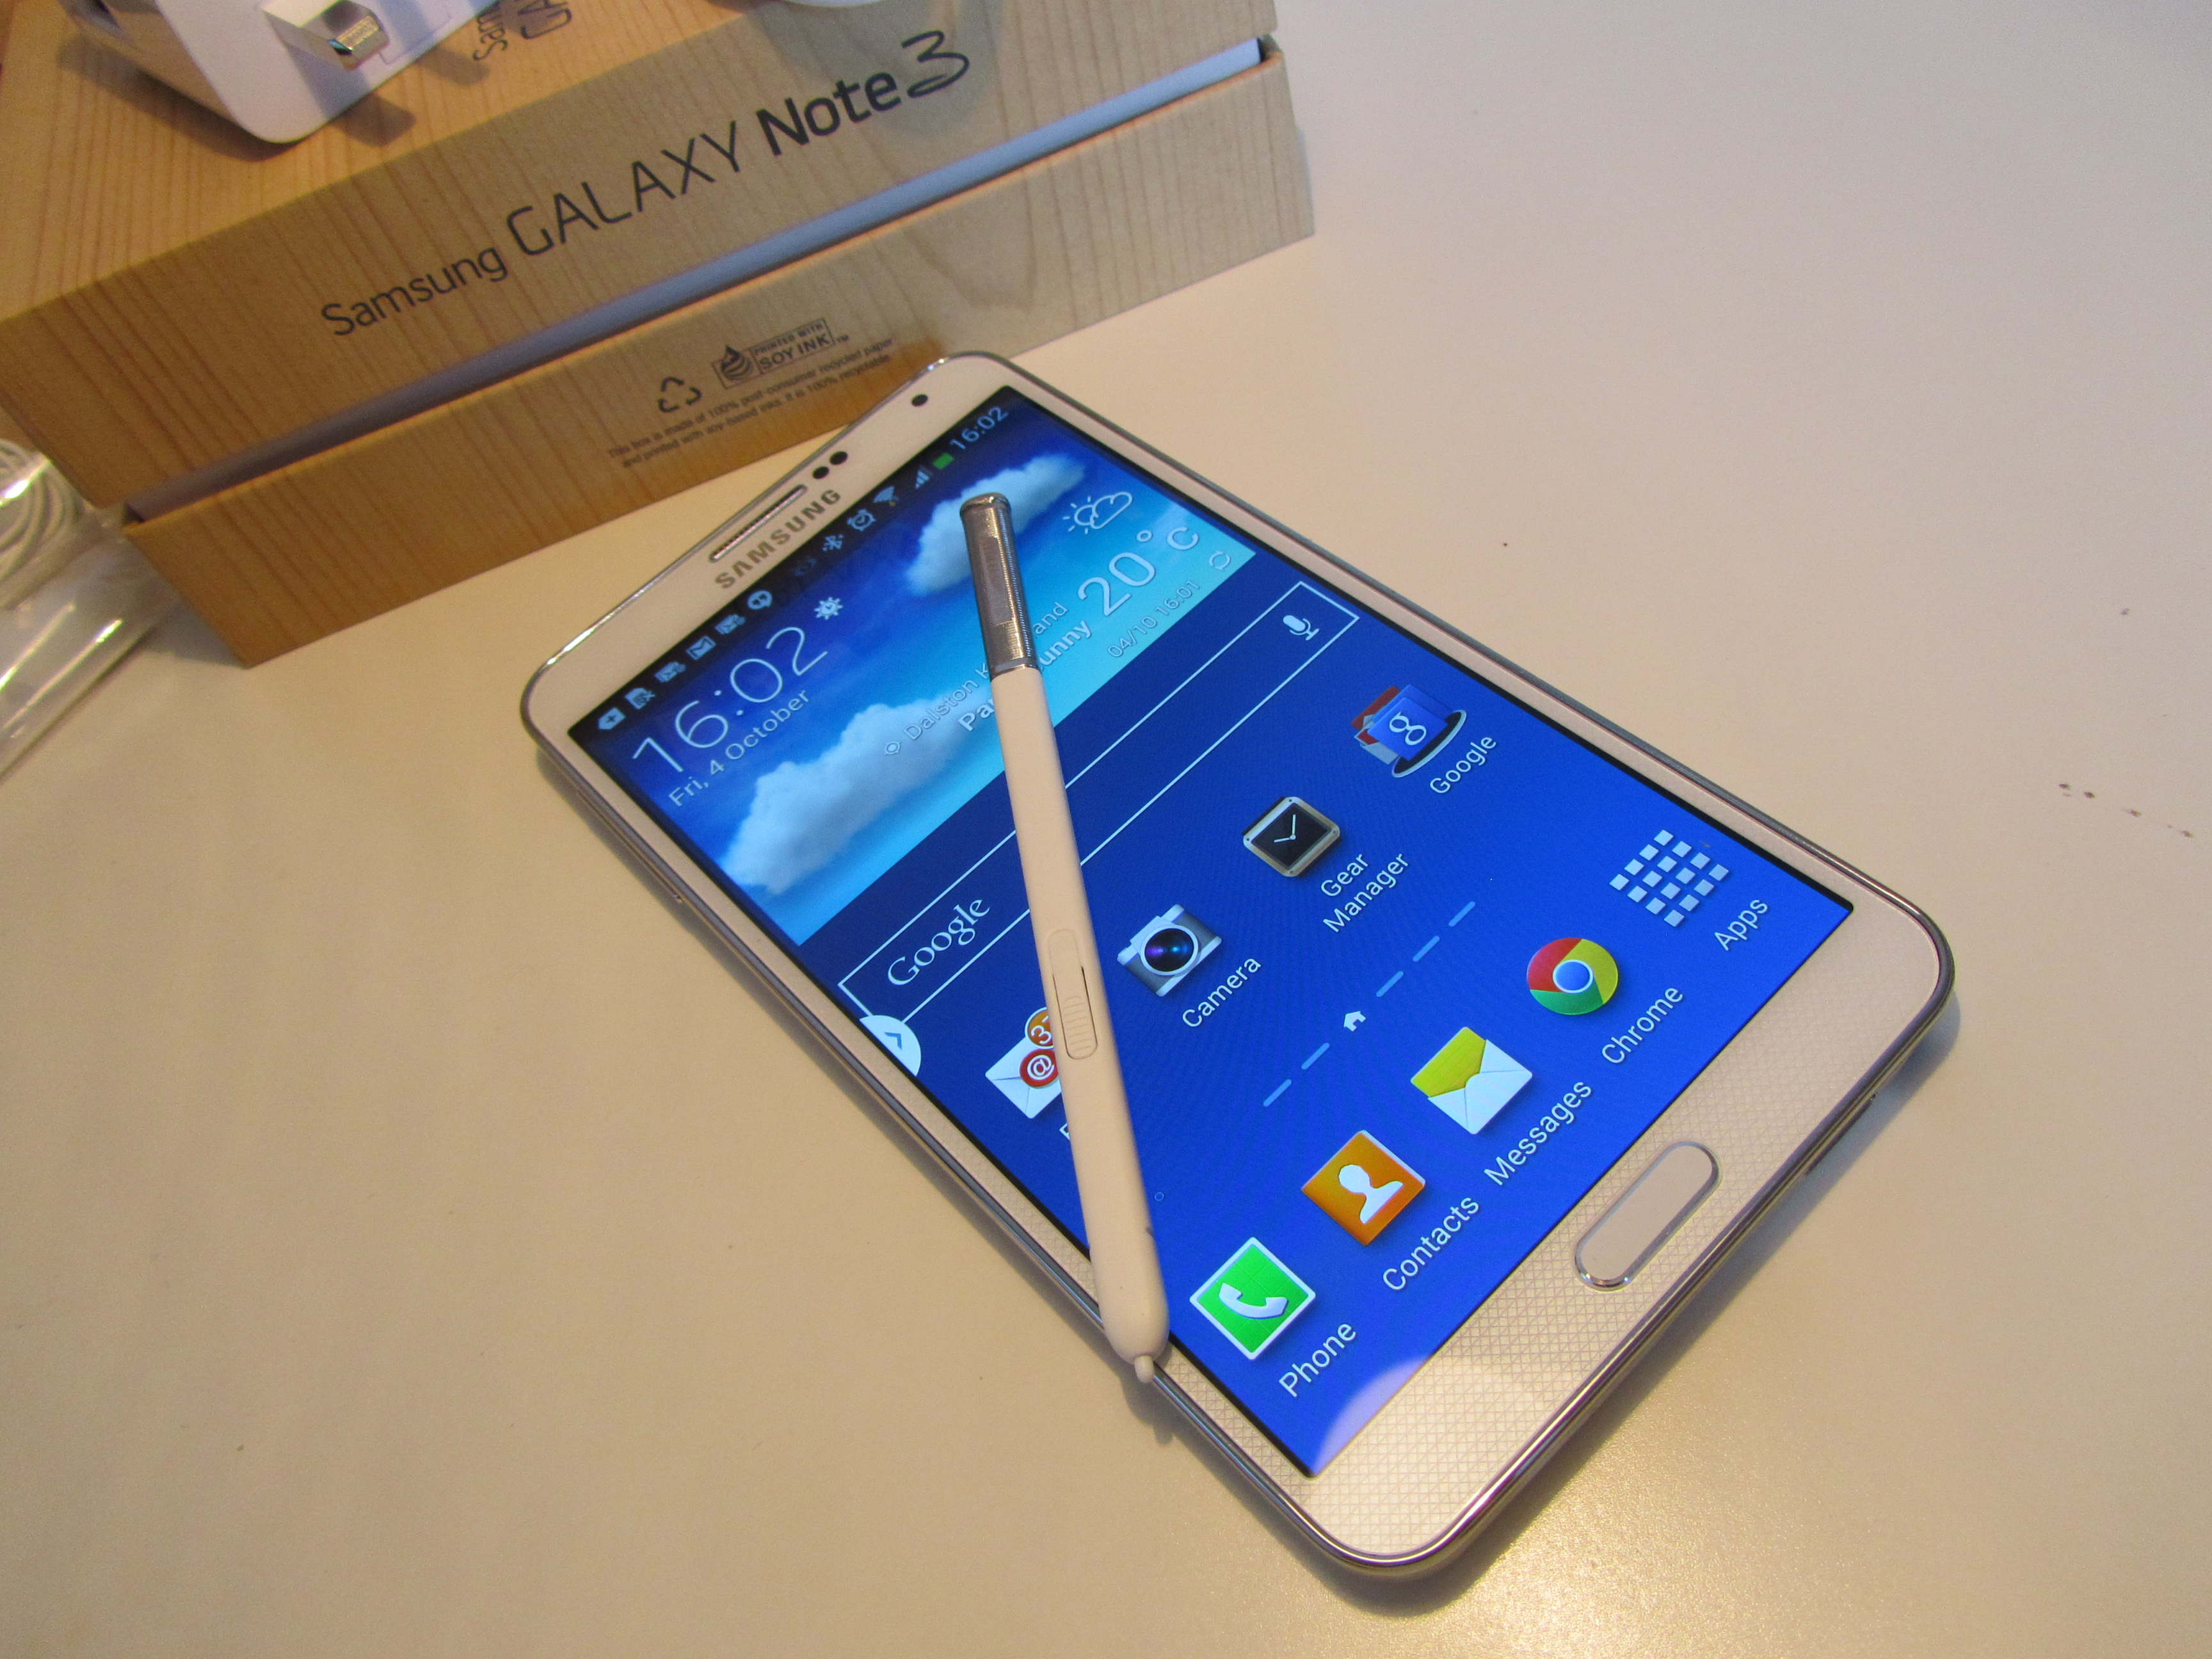 Note3 SPen Samsung Galaxy Note 3 review: One of the best Android handsets money can buy, if you can hold it